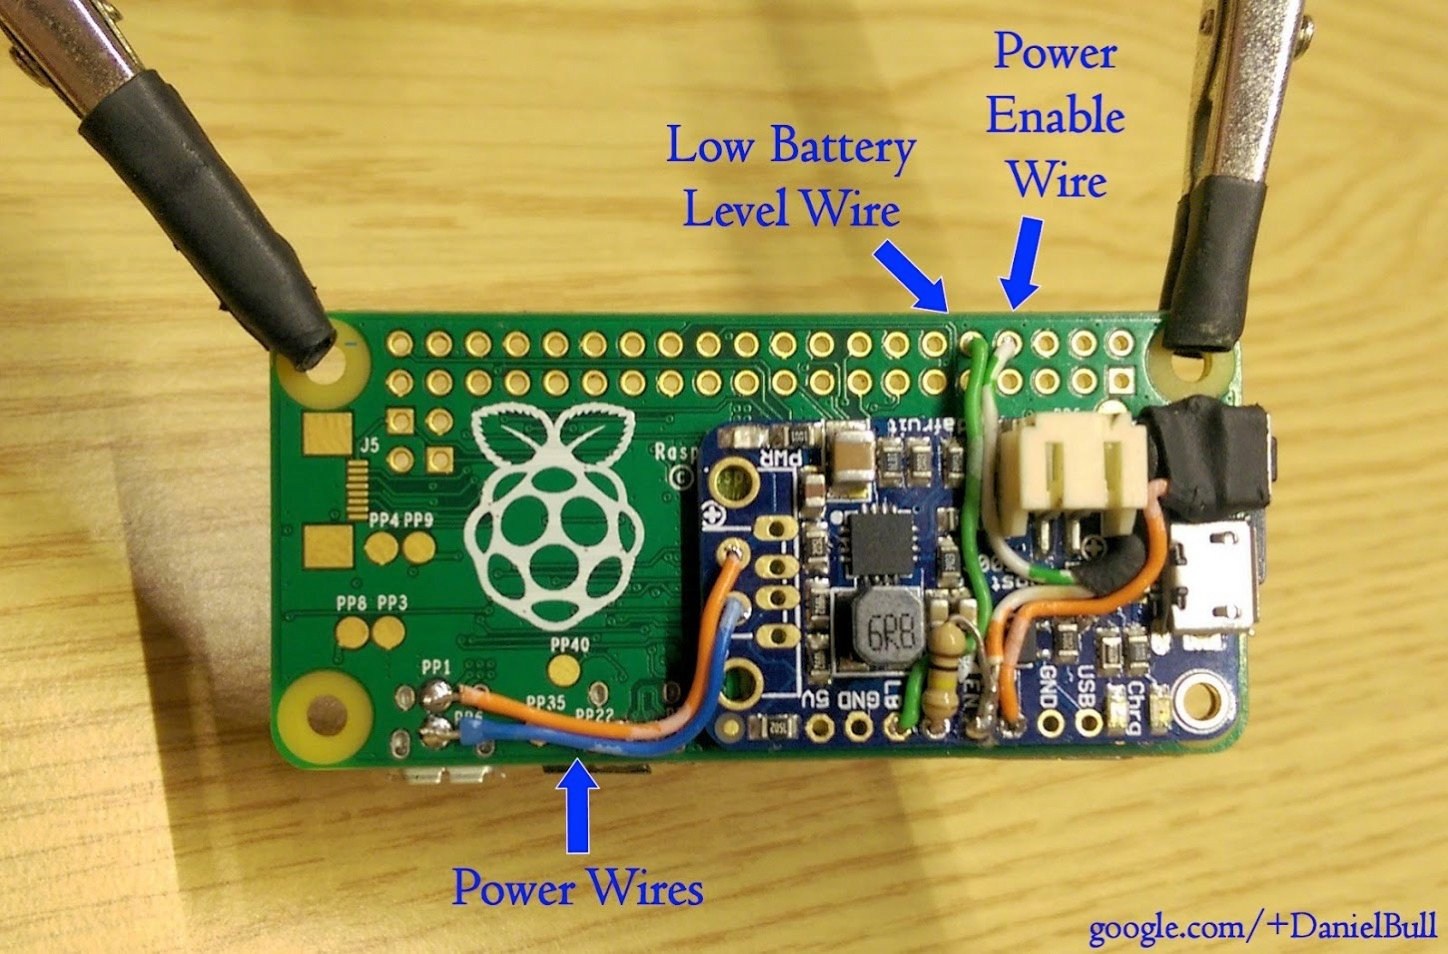 How To Run A Pi Zero And Other Pis From Lipo Including Low Battery Voltage Indicator Alarm Circuit Diagram Raspberry Piday Raspberypi Wiring